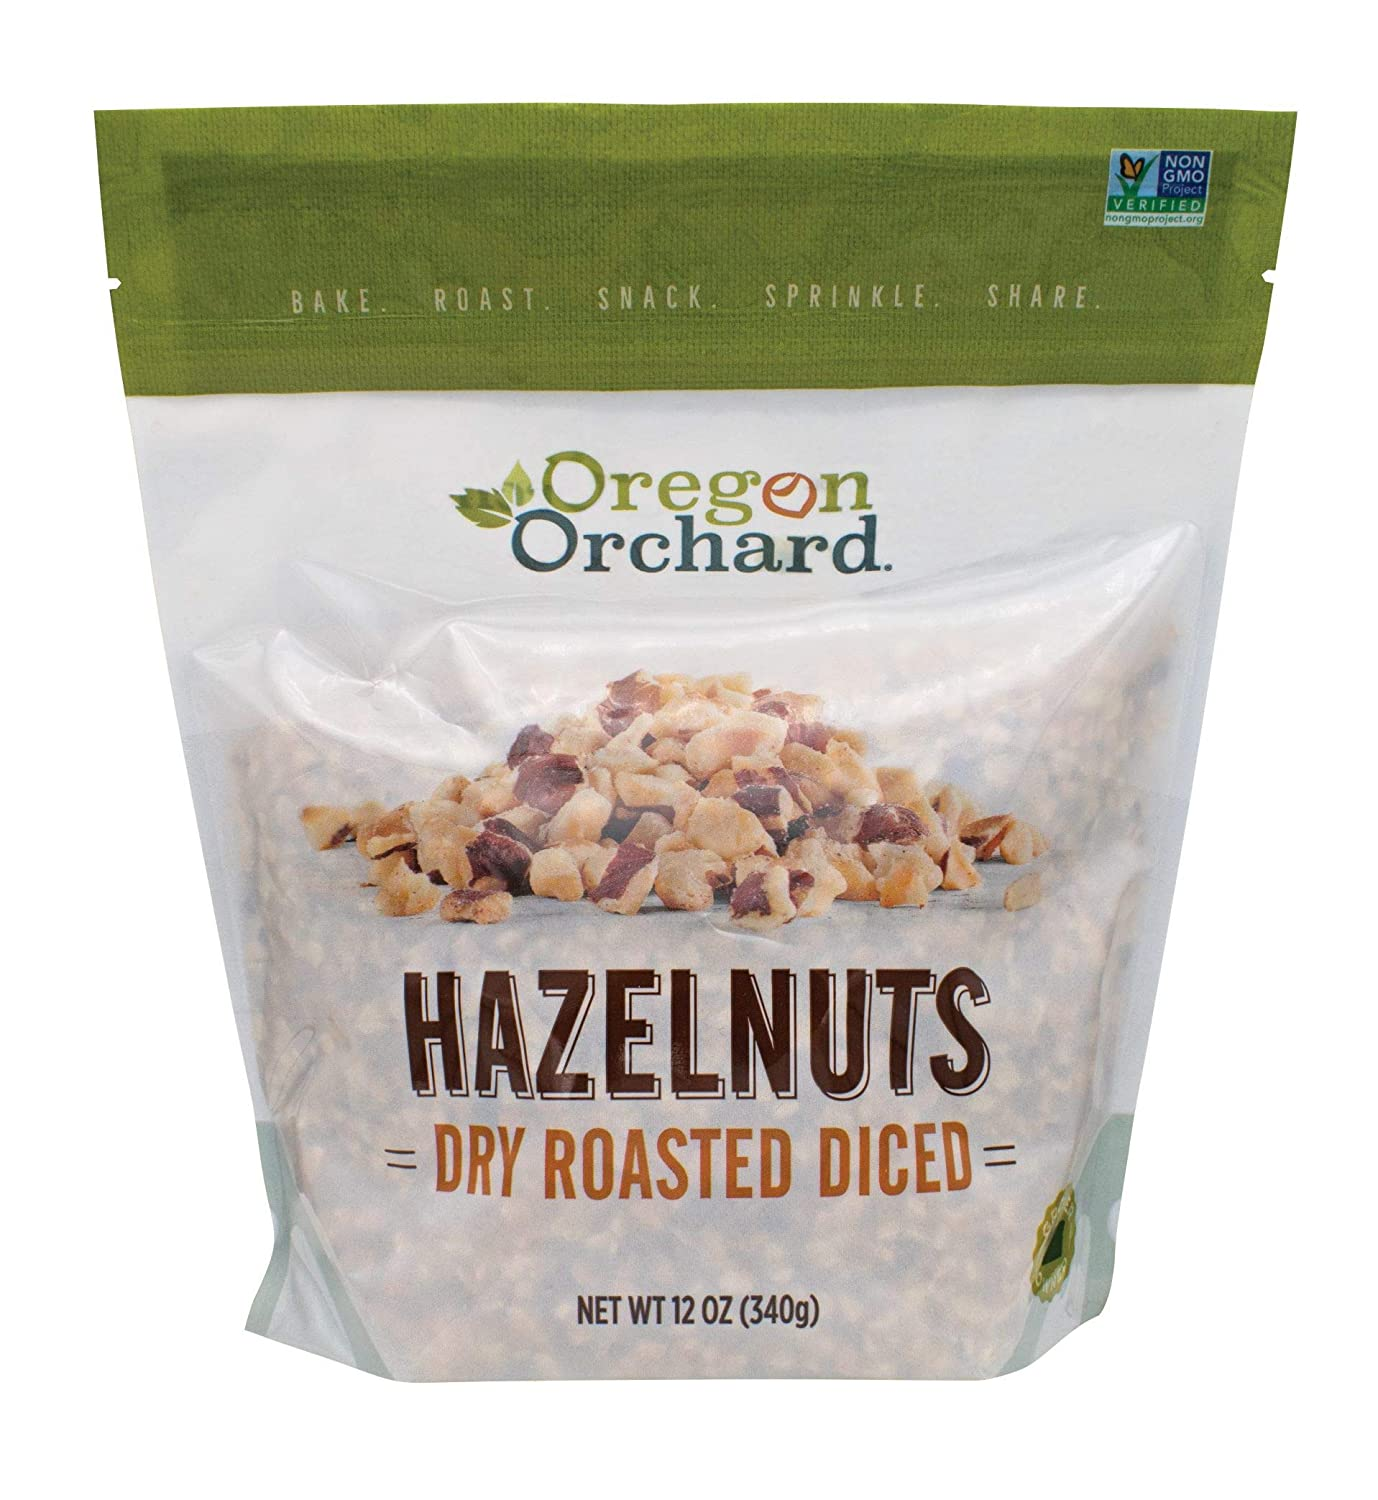 Surprise Spasm price price Oregon Orchard Dry Roasted Diced Hazelnuts Chopped